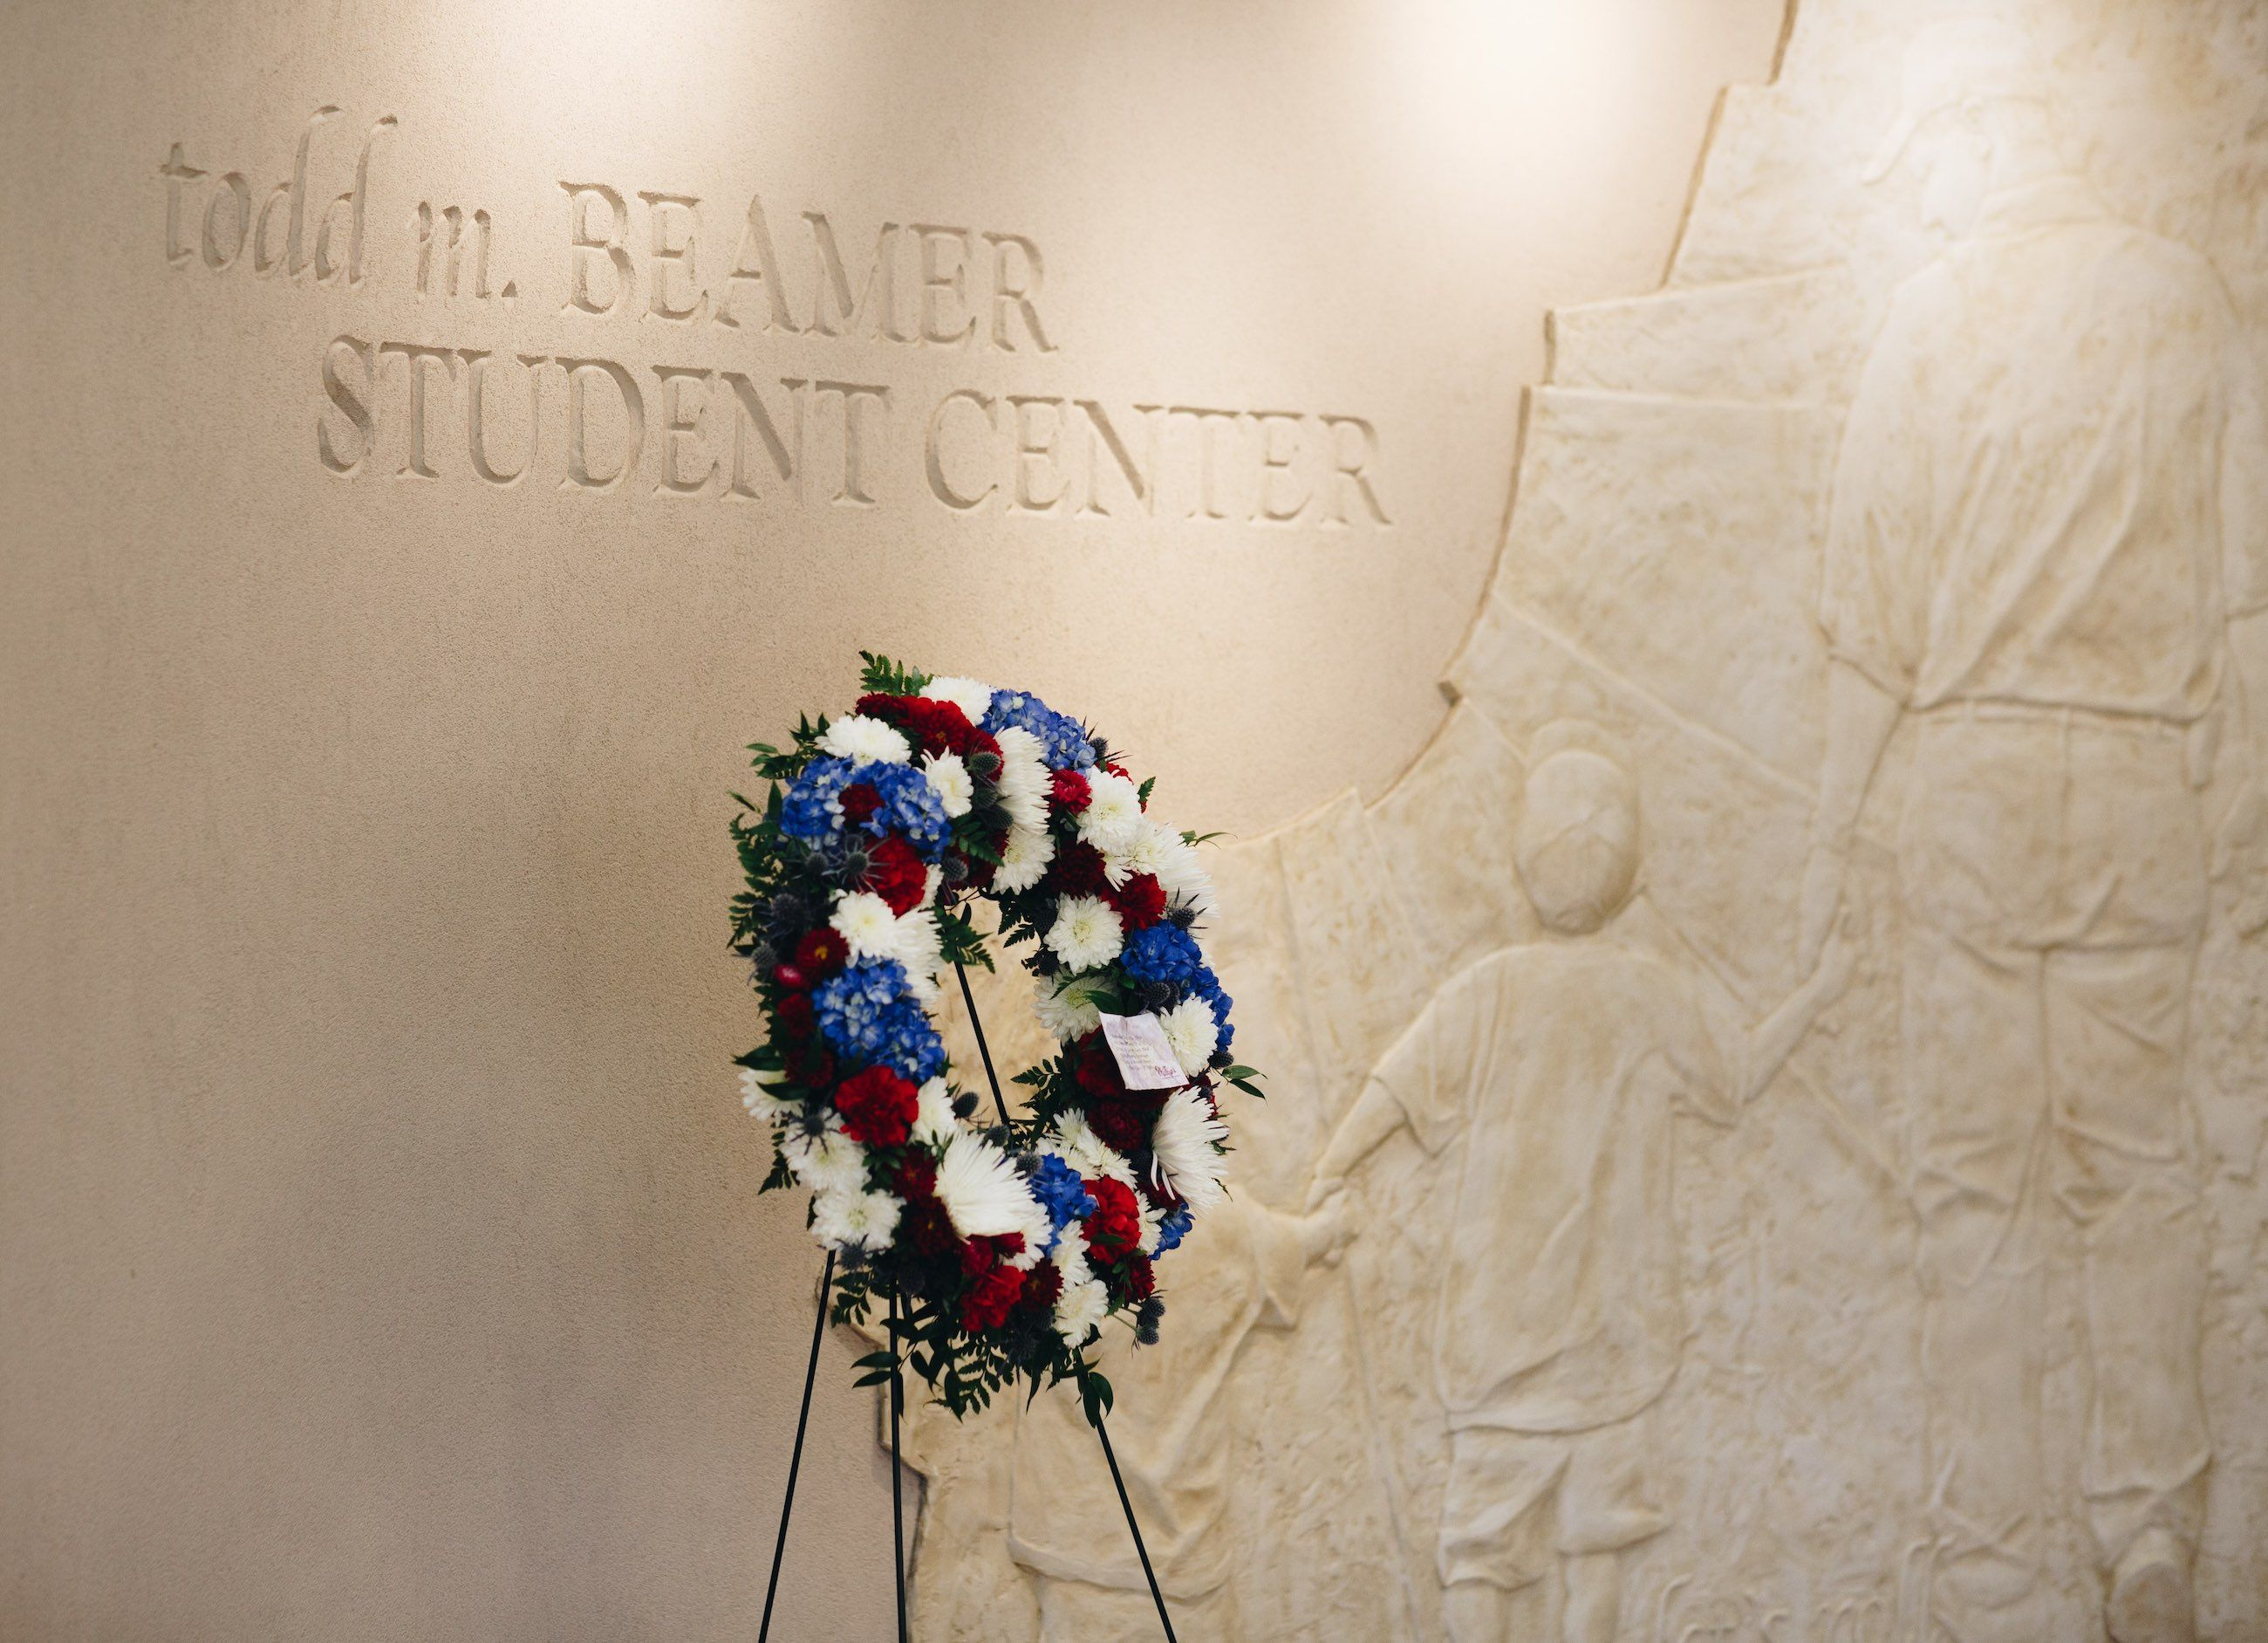 """On 9/11, a wreath is displayed in the Todd M. Beamer Student Center near the bas-relief likeness of Beamer with his sons, and the engraved words: """"Let's roll."""""""